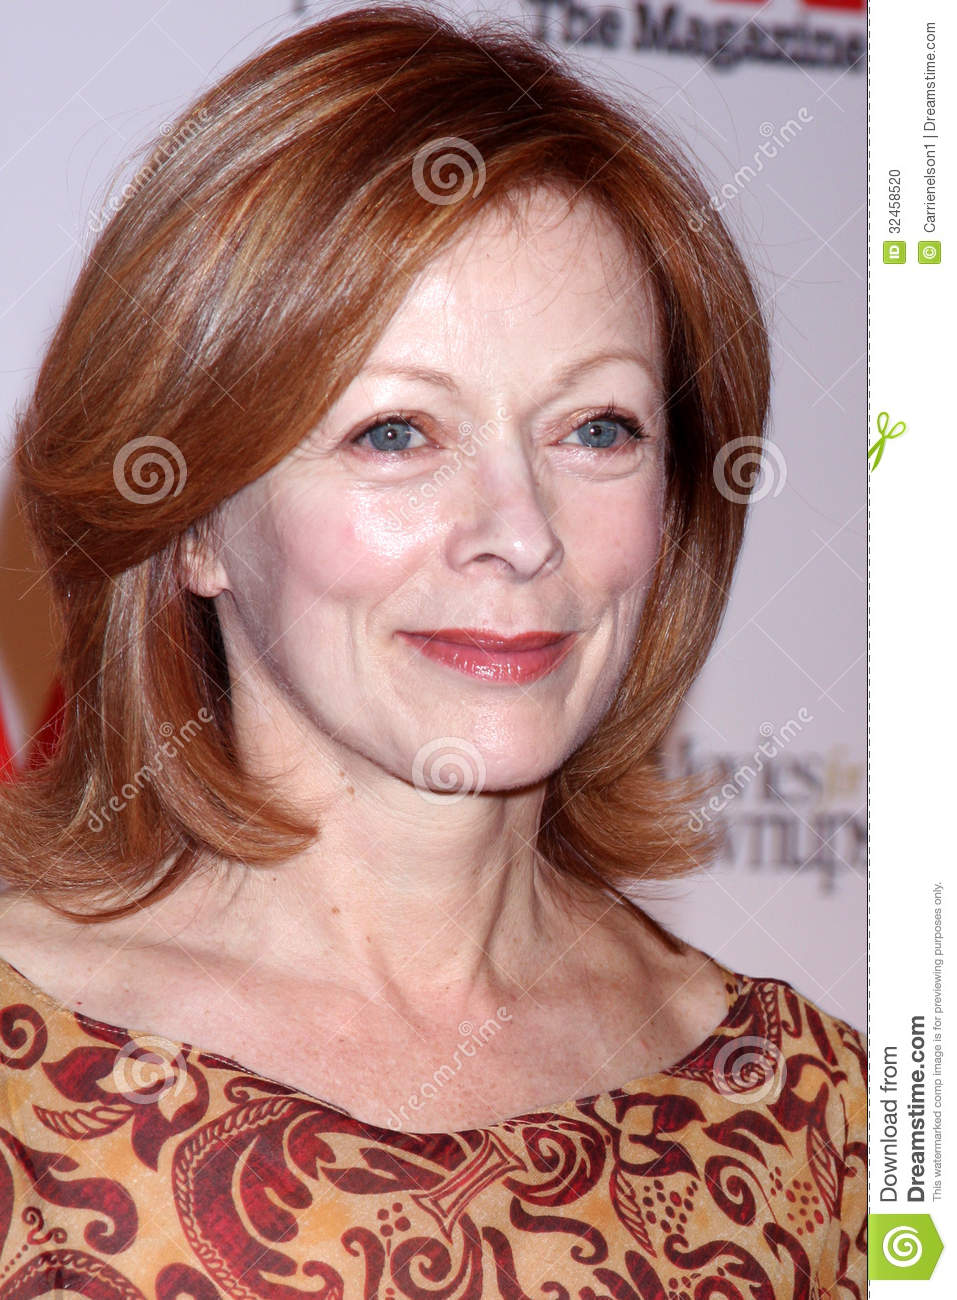 frances fisher ncisfrances fisher biceps, frances fisher x files, frances fisher titanic, frances fisher, frances fisher imdb, frances fisher clint eastwood, frances fisher net worth, frances fisher young, frances fisher actress, frances fisher twitter, frances fisher edge of night, frances fisher hot, frances fisher relationship with daughter, frances fisher ncis, frances fisher age, frances fisher downton abbey, frances fisher lauren holly, frances fisher clint eastwood relationship, frances fisher sons of anarchy, frances fisher palm beach